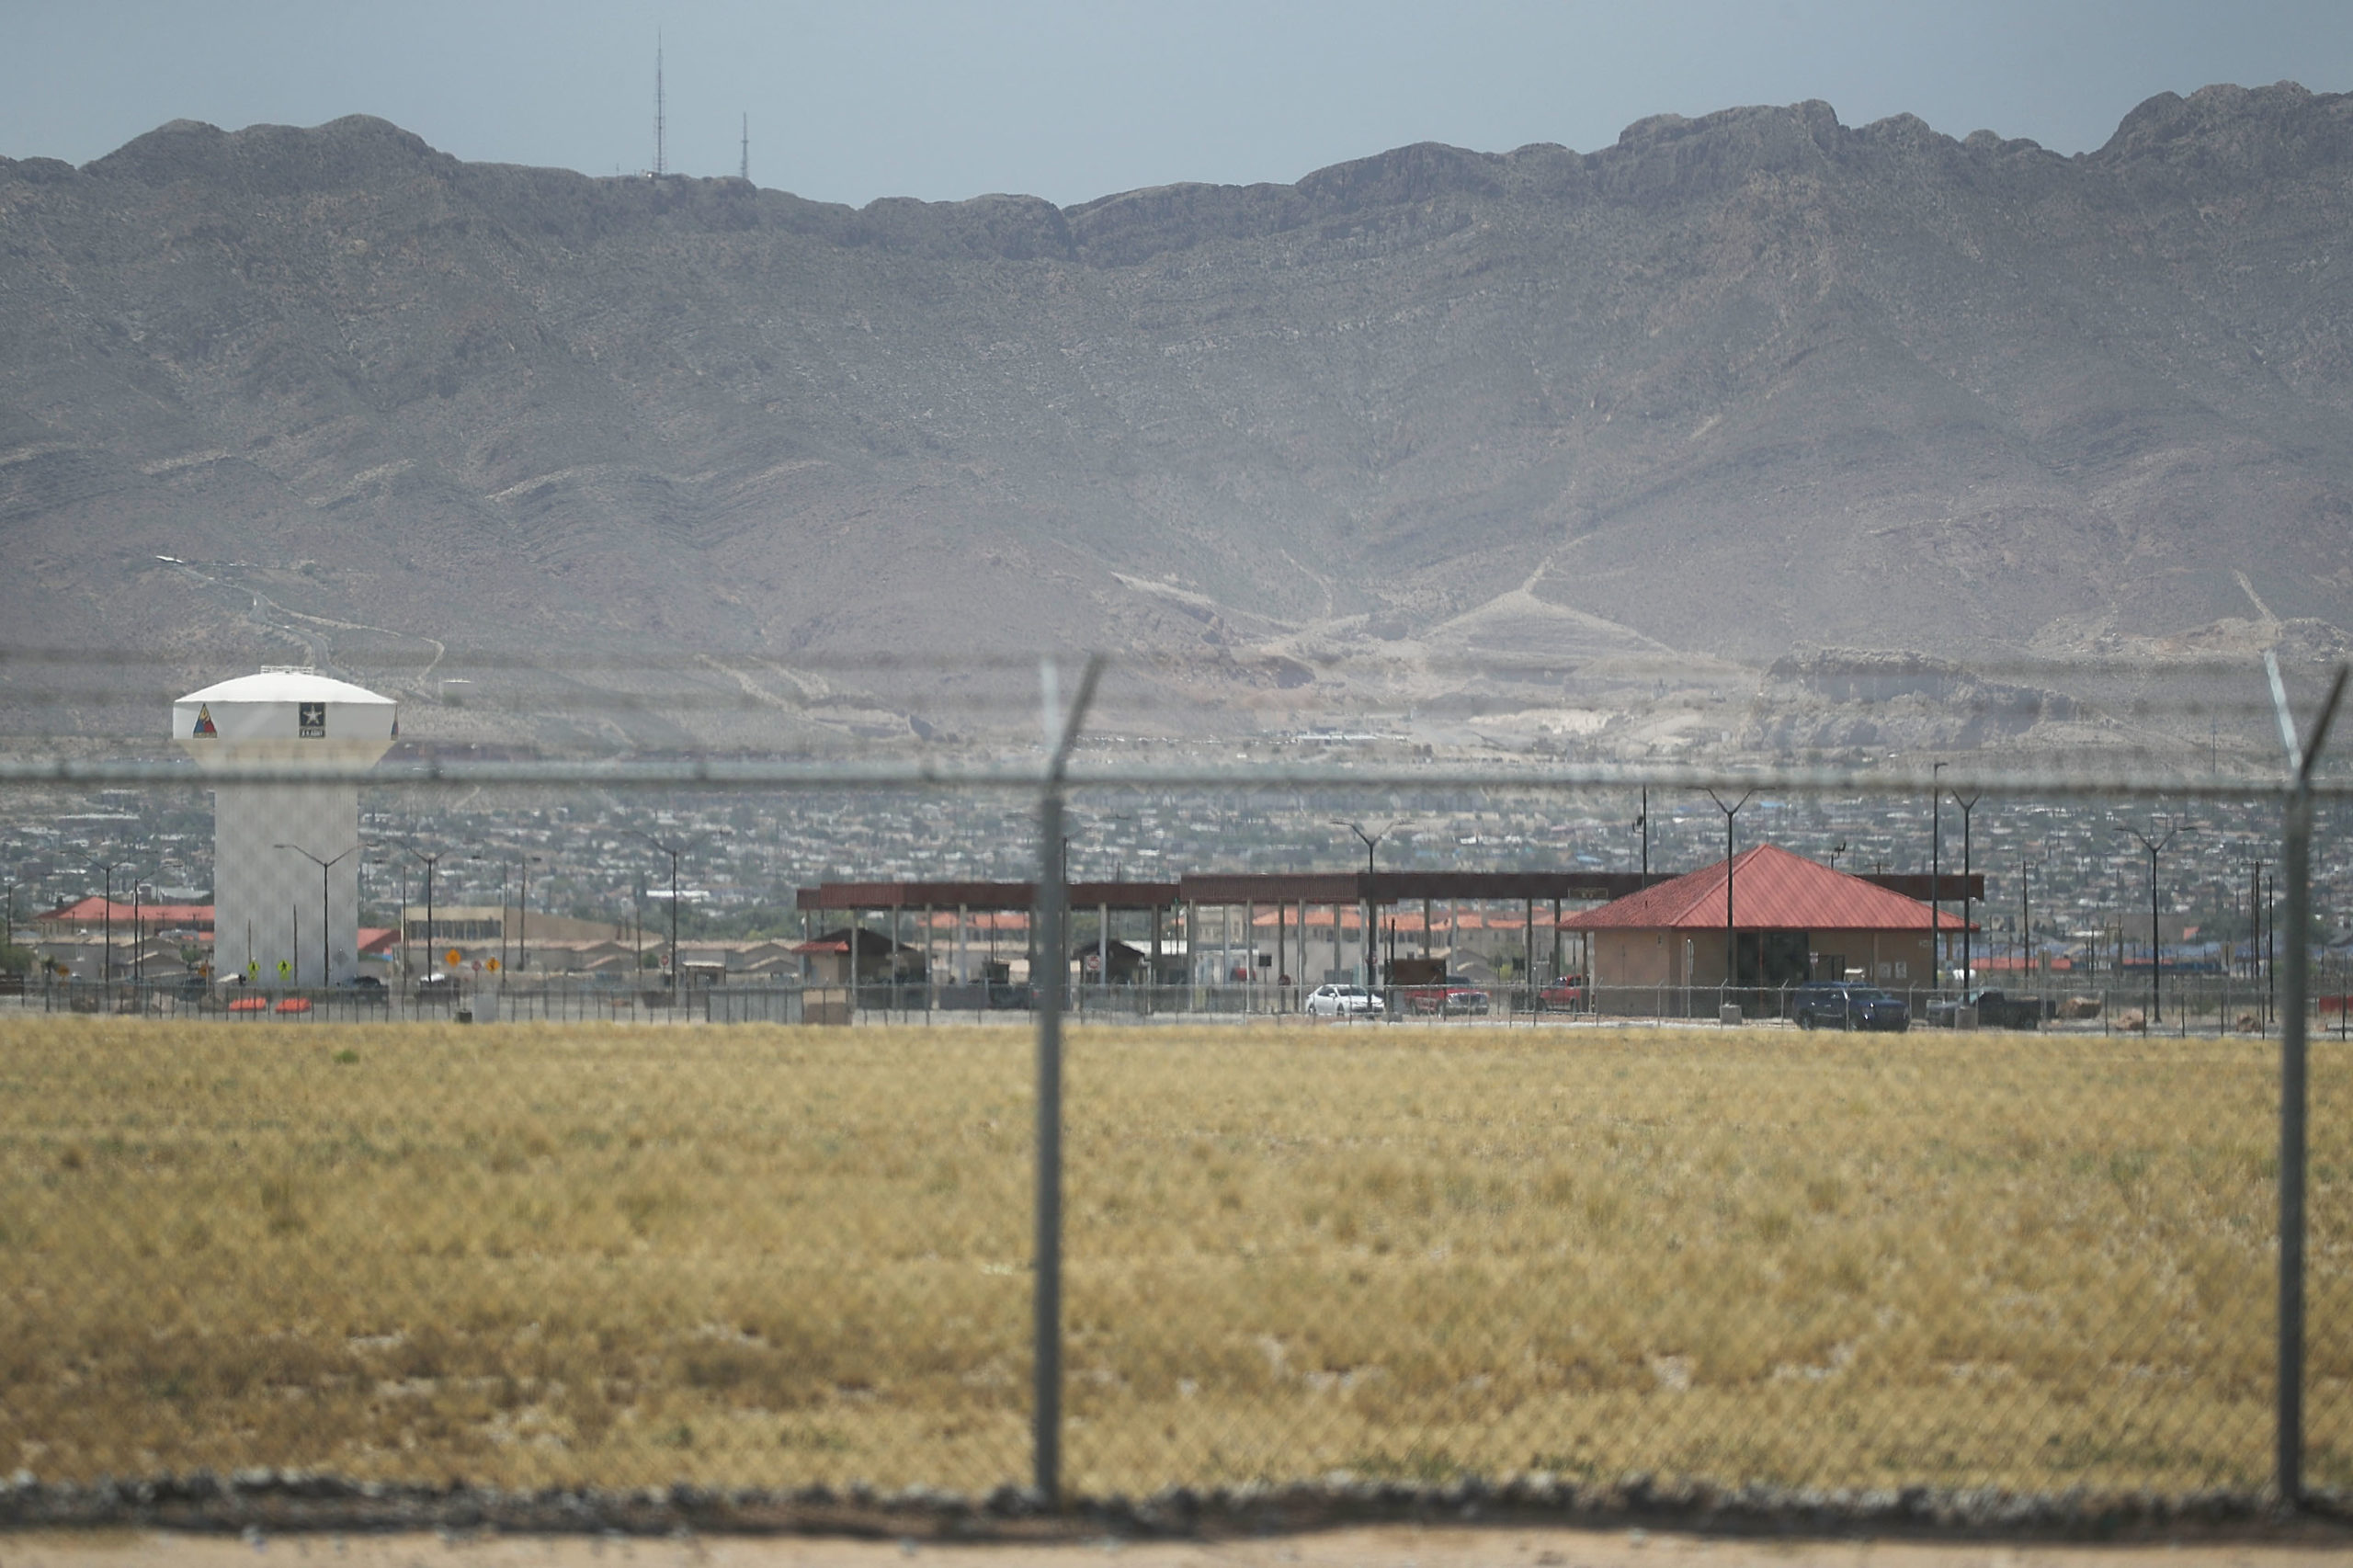 An entrance to Fort Bliss is shown as reports indicate the military will begin to construct temporary housing for mmigrants on June 25, 2018 in Fort Bliss, Texas. (Photo by Joe Raedle/Getty Images)